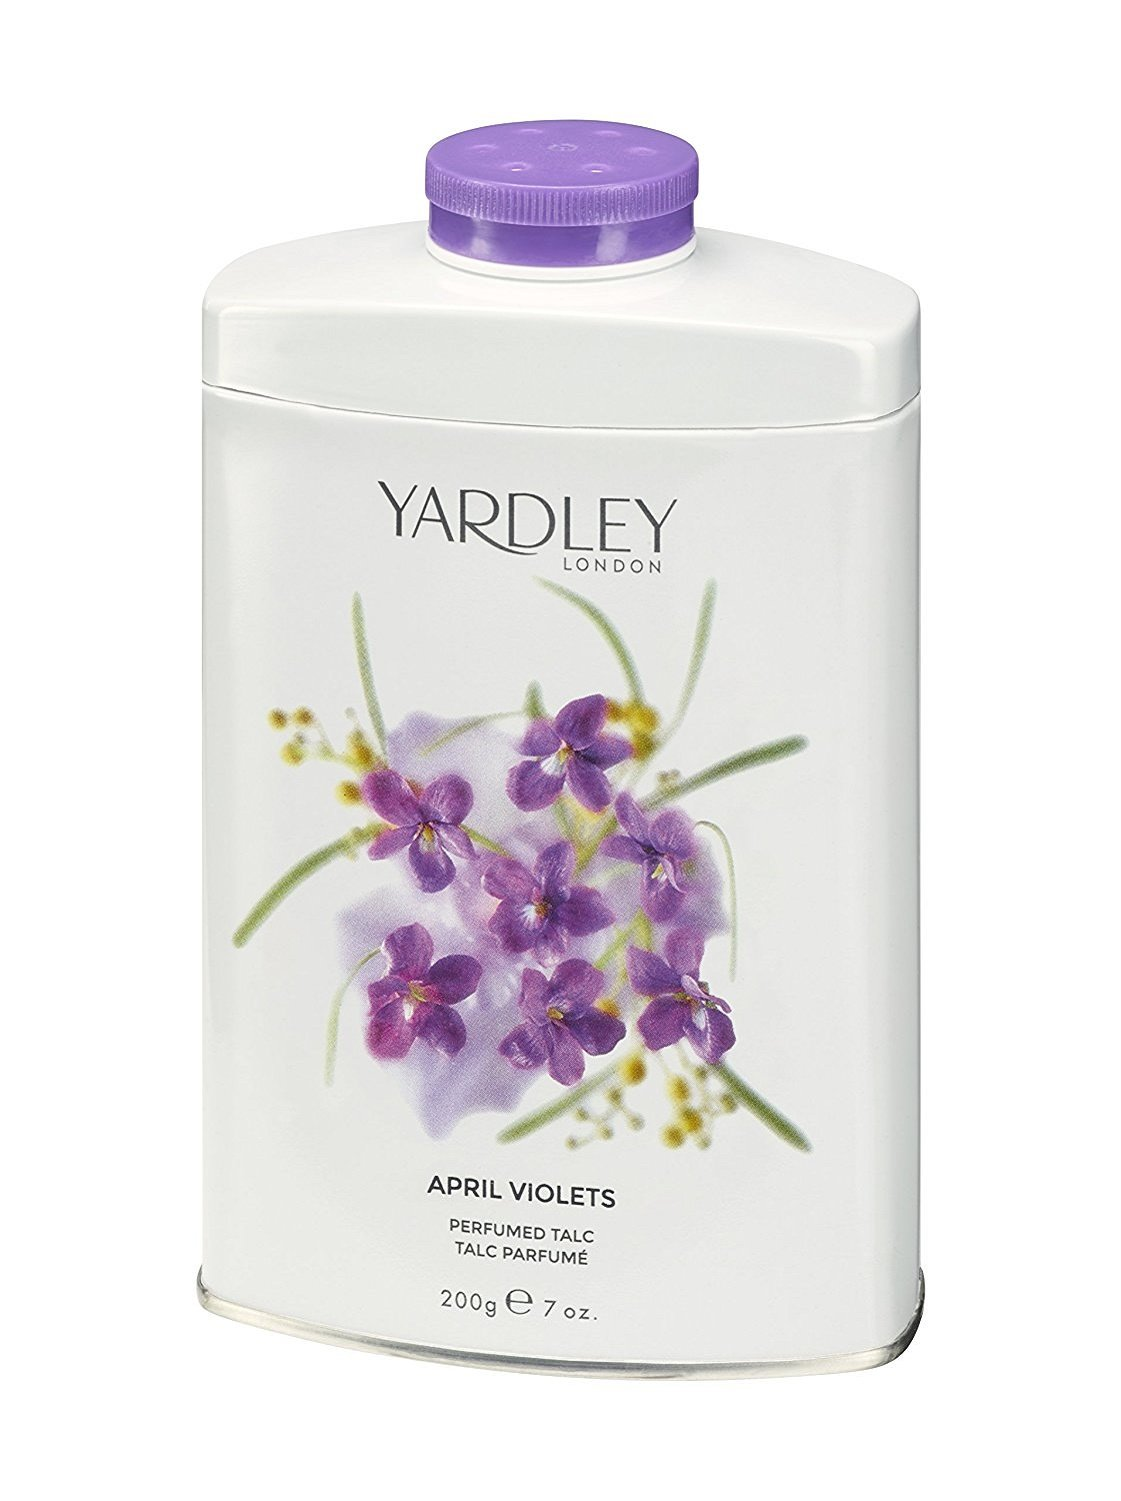 April Violets By Yardley London 7 oz Talc for Women